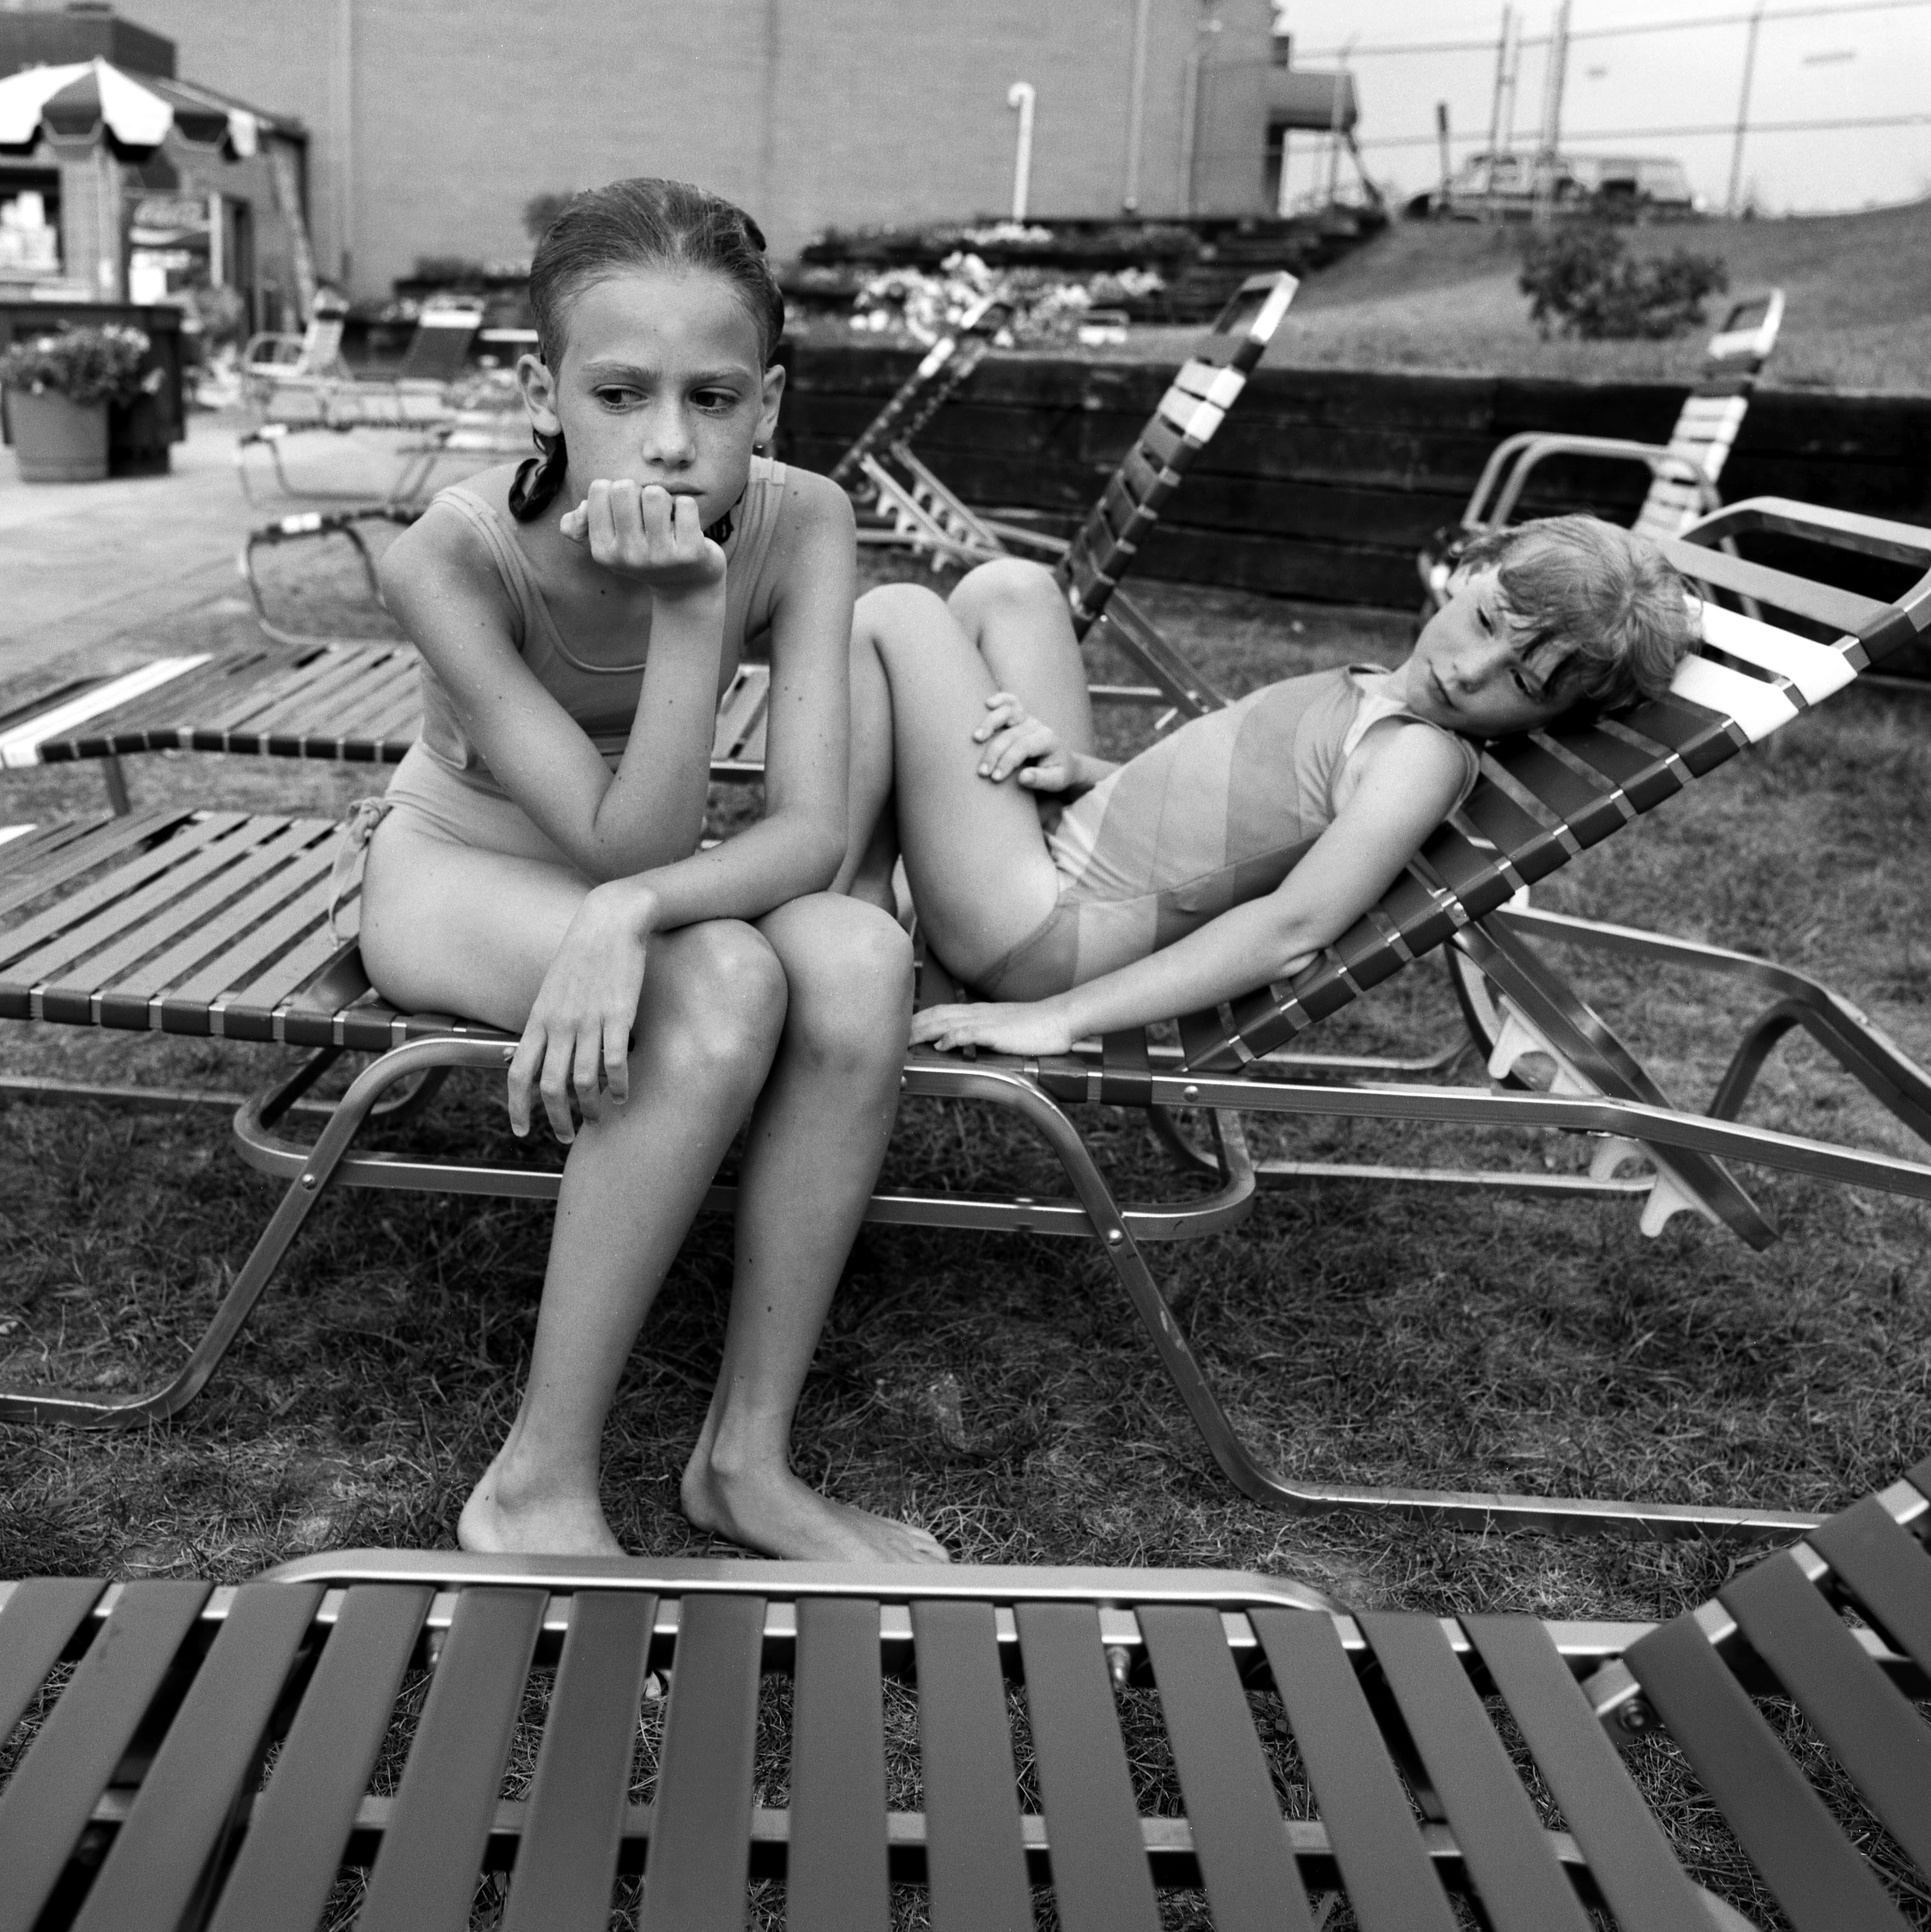 '87 Alison and Julia at the pool, Bel Air, MD2